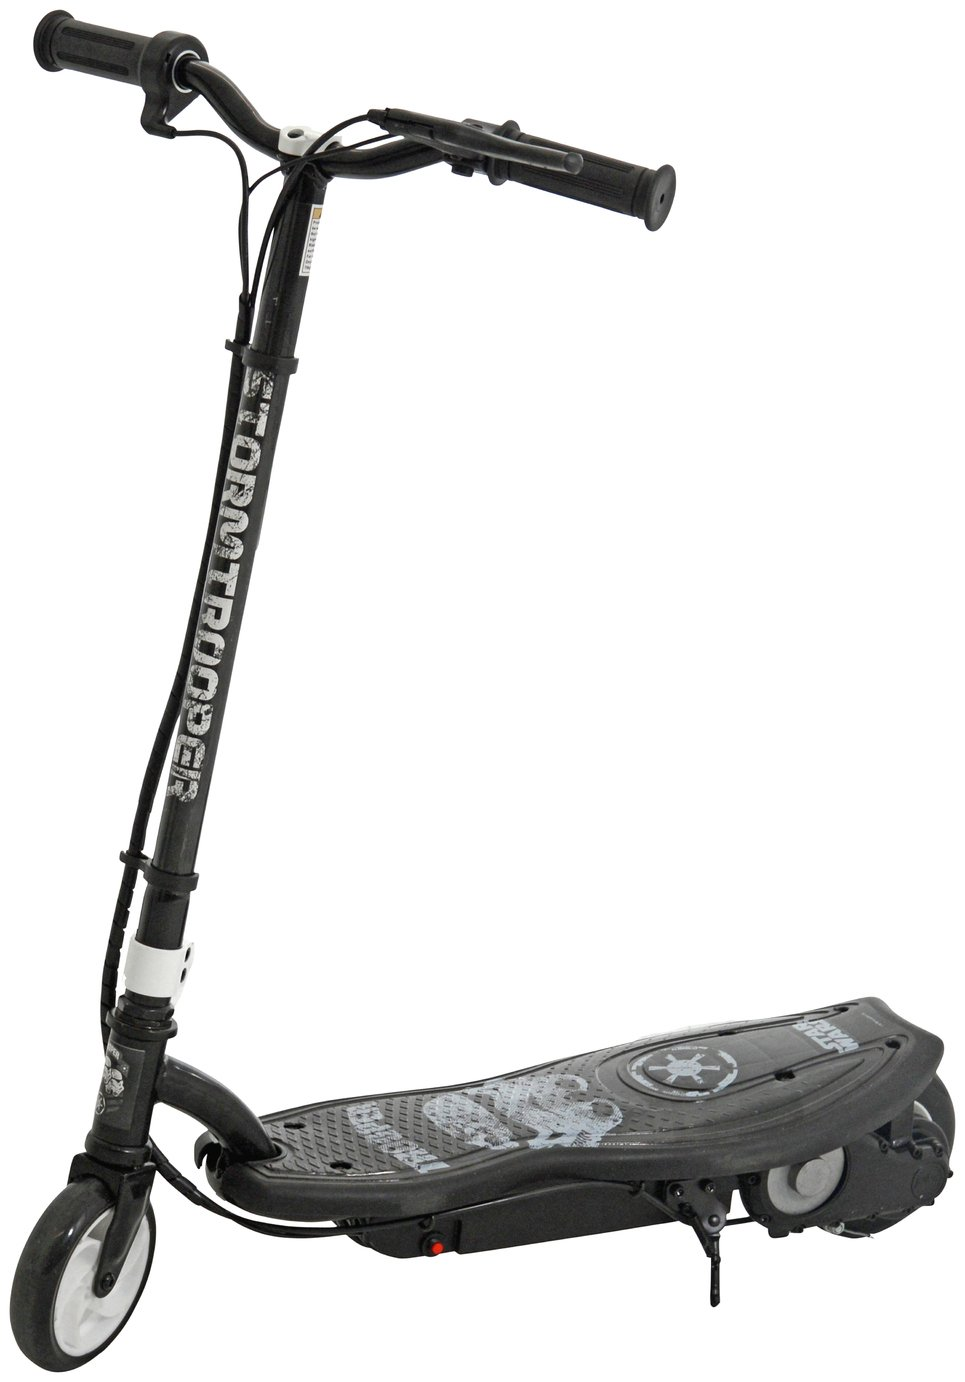 Star Wars Stormtrooper Electric Scooter review